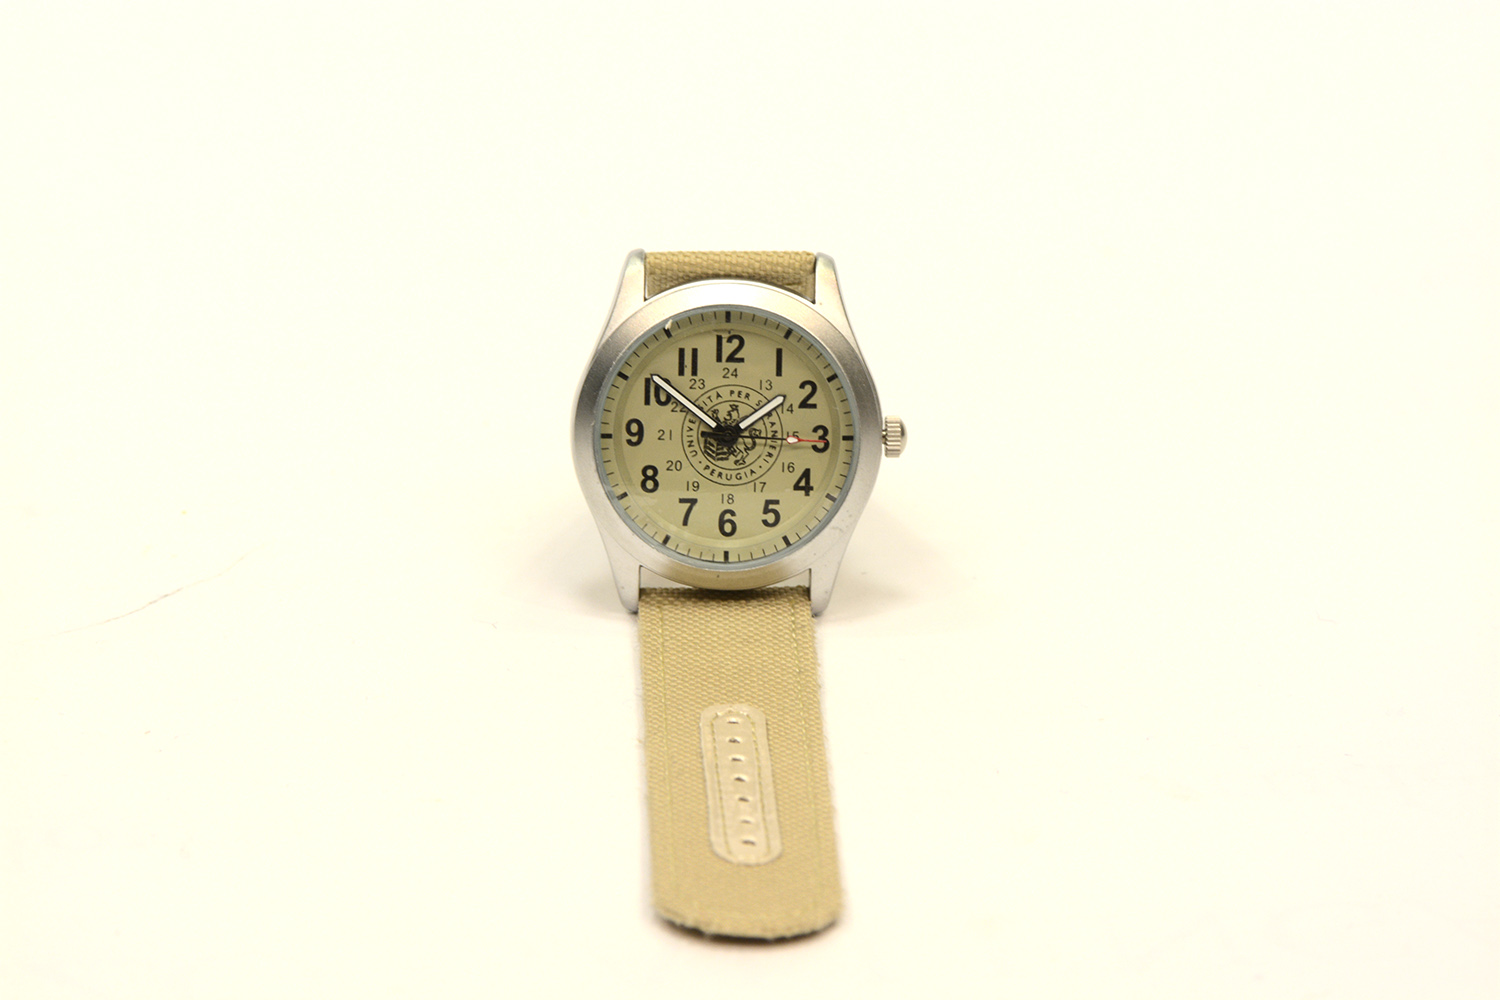 ANALOG WRIST WATCH